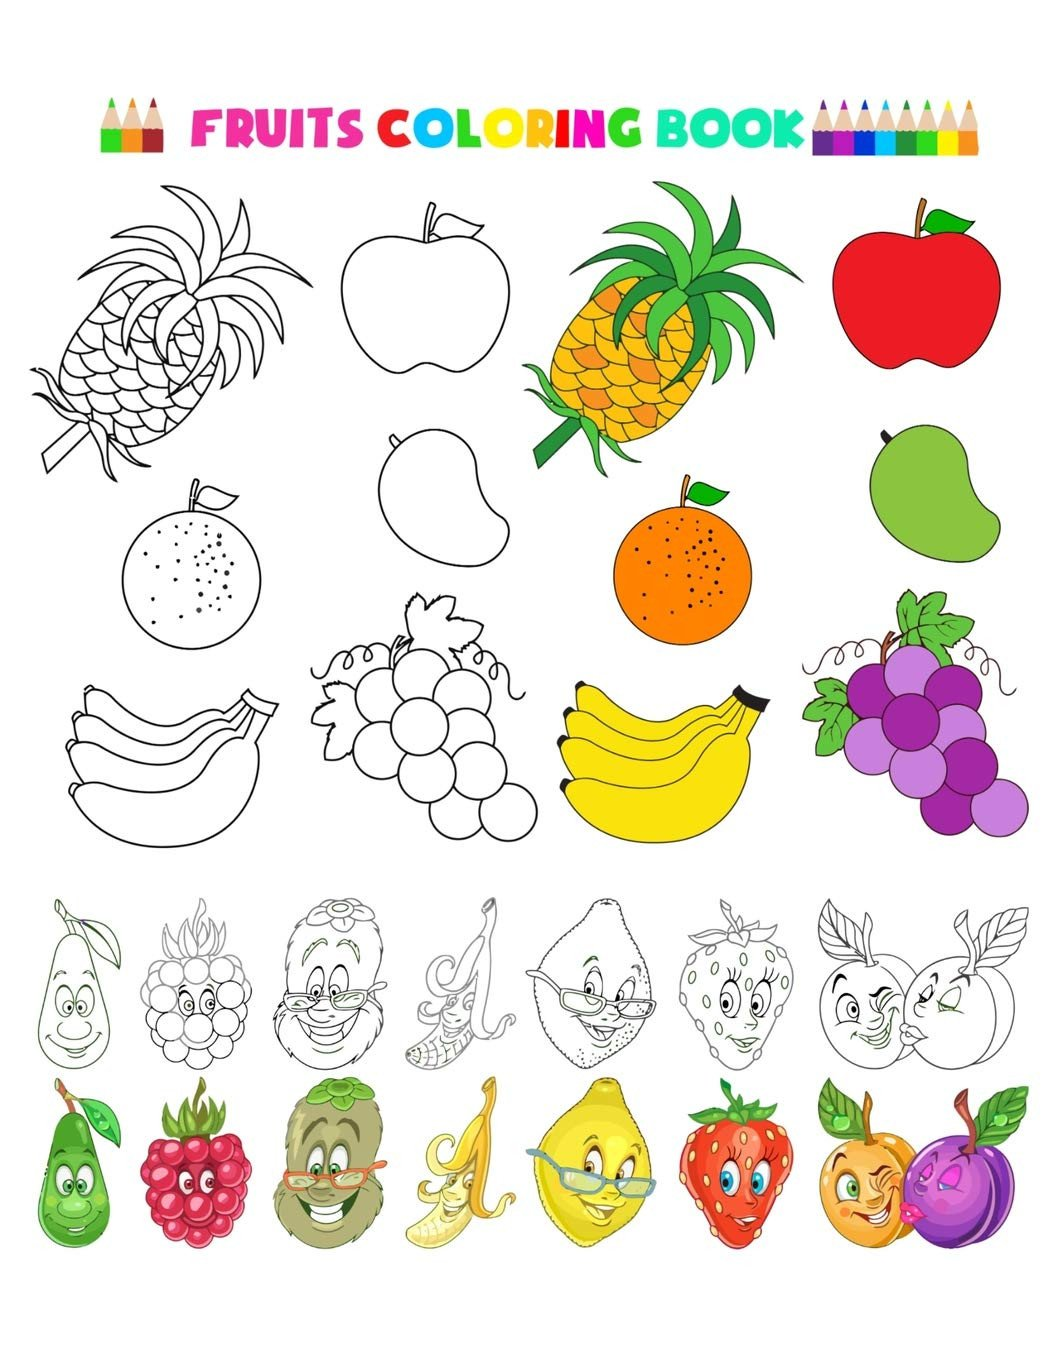 Preschool Fruits and Vegetables Worksheets Buy Fruitsloring Book and Ve Ables Baby Activity Krvy5i L